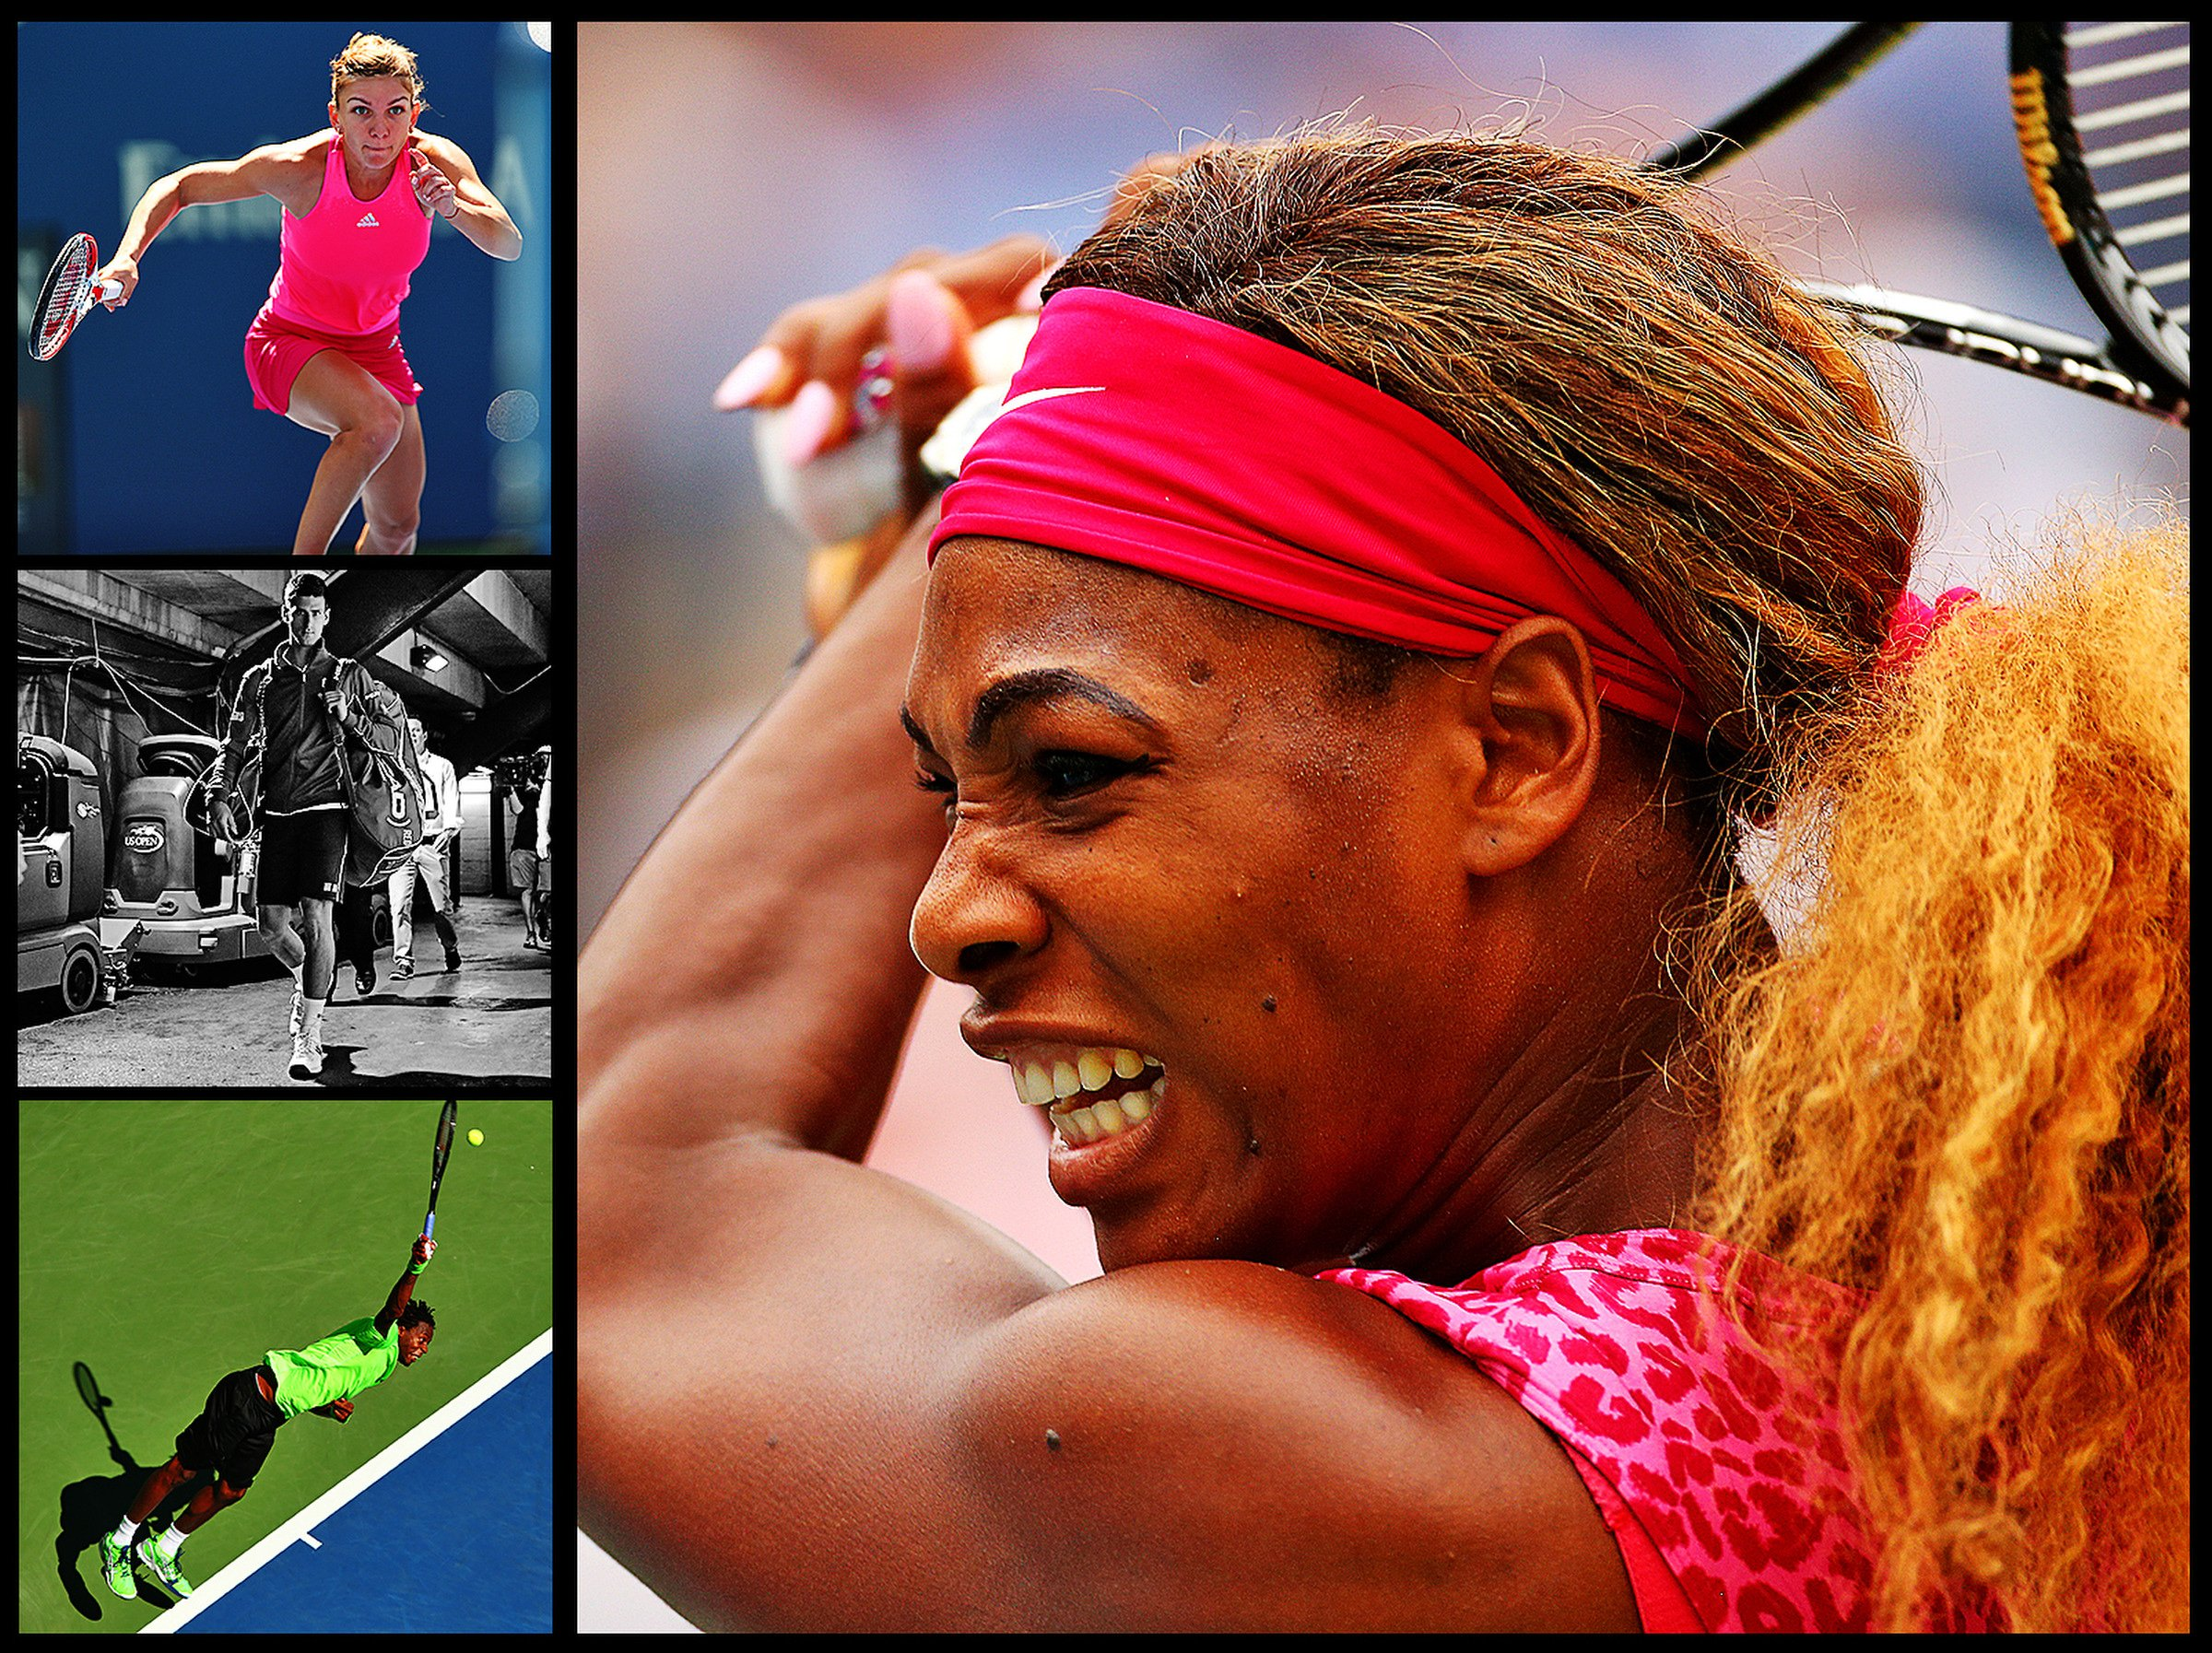 Number of matches won in Arthur Ashe Stadium by Serena Williams through the 2014 round of 16, the most by any player since the stadium's inaugural year in 1997. Williams is competing for her third consecutive Open title, sixth overall, and her 18th Grand Slam win.